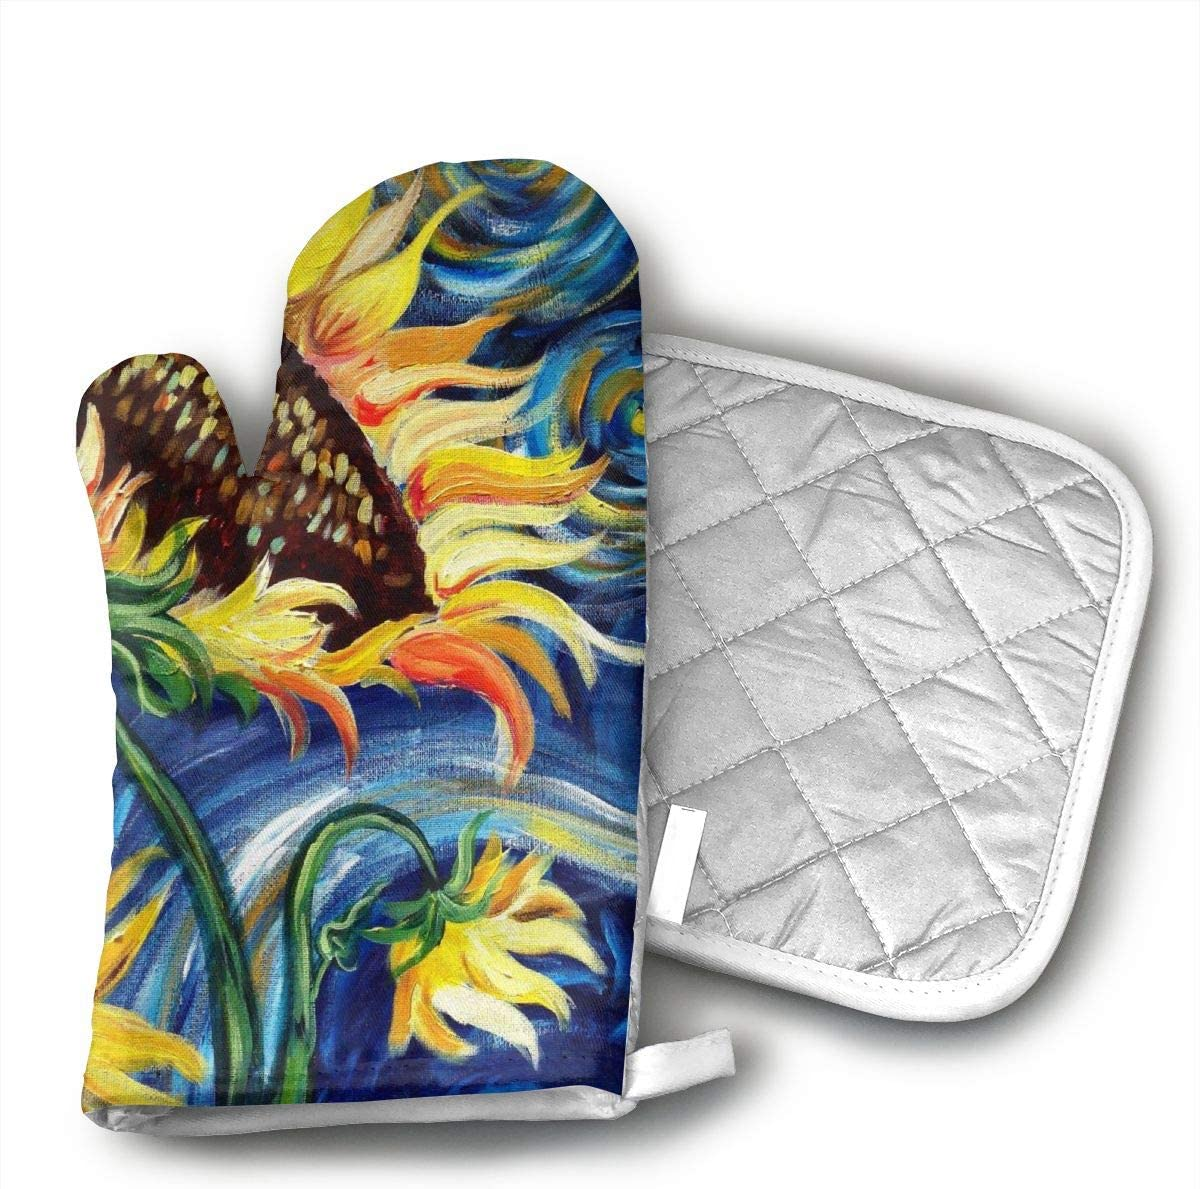 HEPKL Oven Mitts and Potholders Starry Night and Sunflowers Non-Slip Grip Heat Resistant Oven Gloves BBQ Cooking Baking Grilling